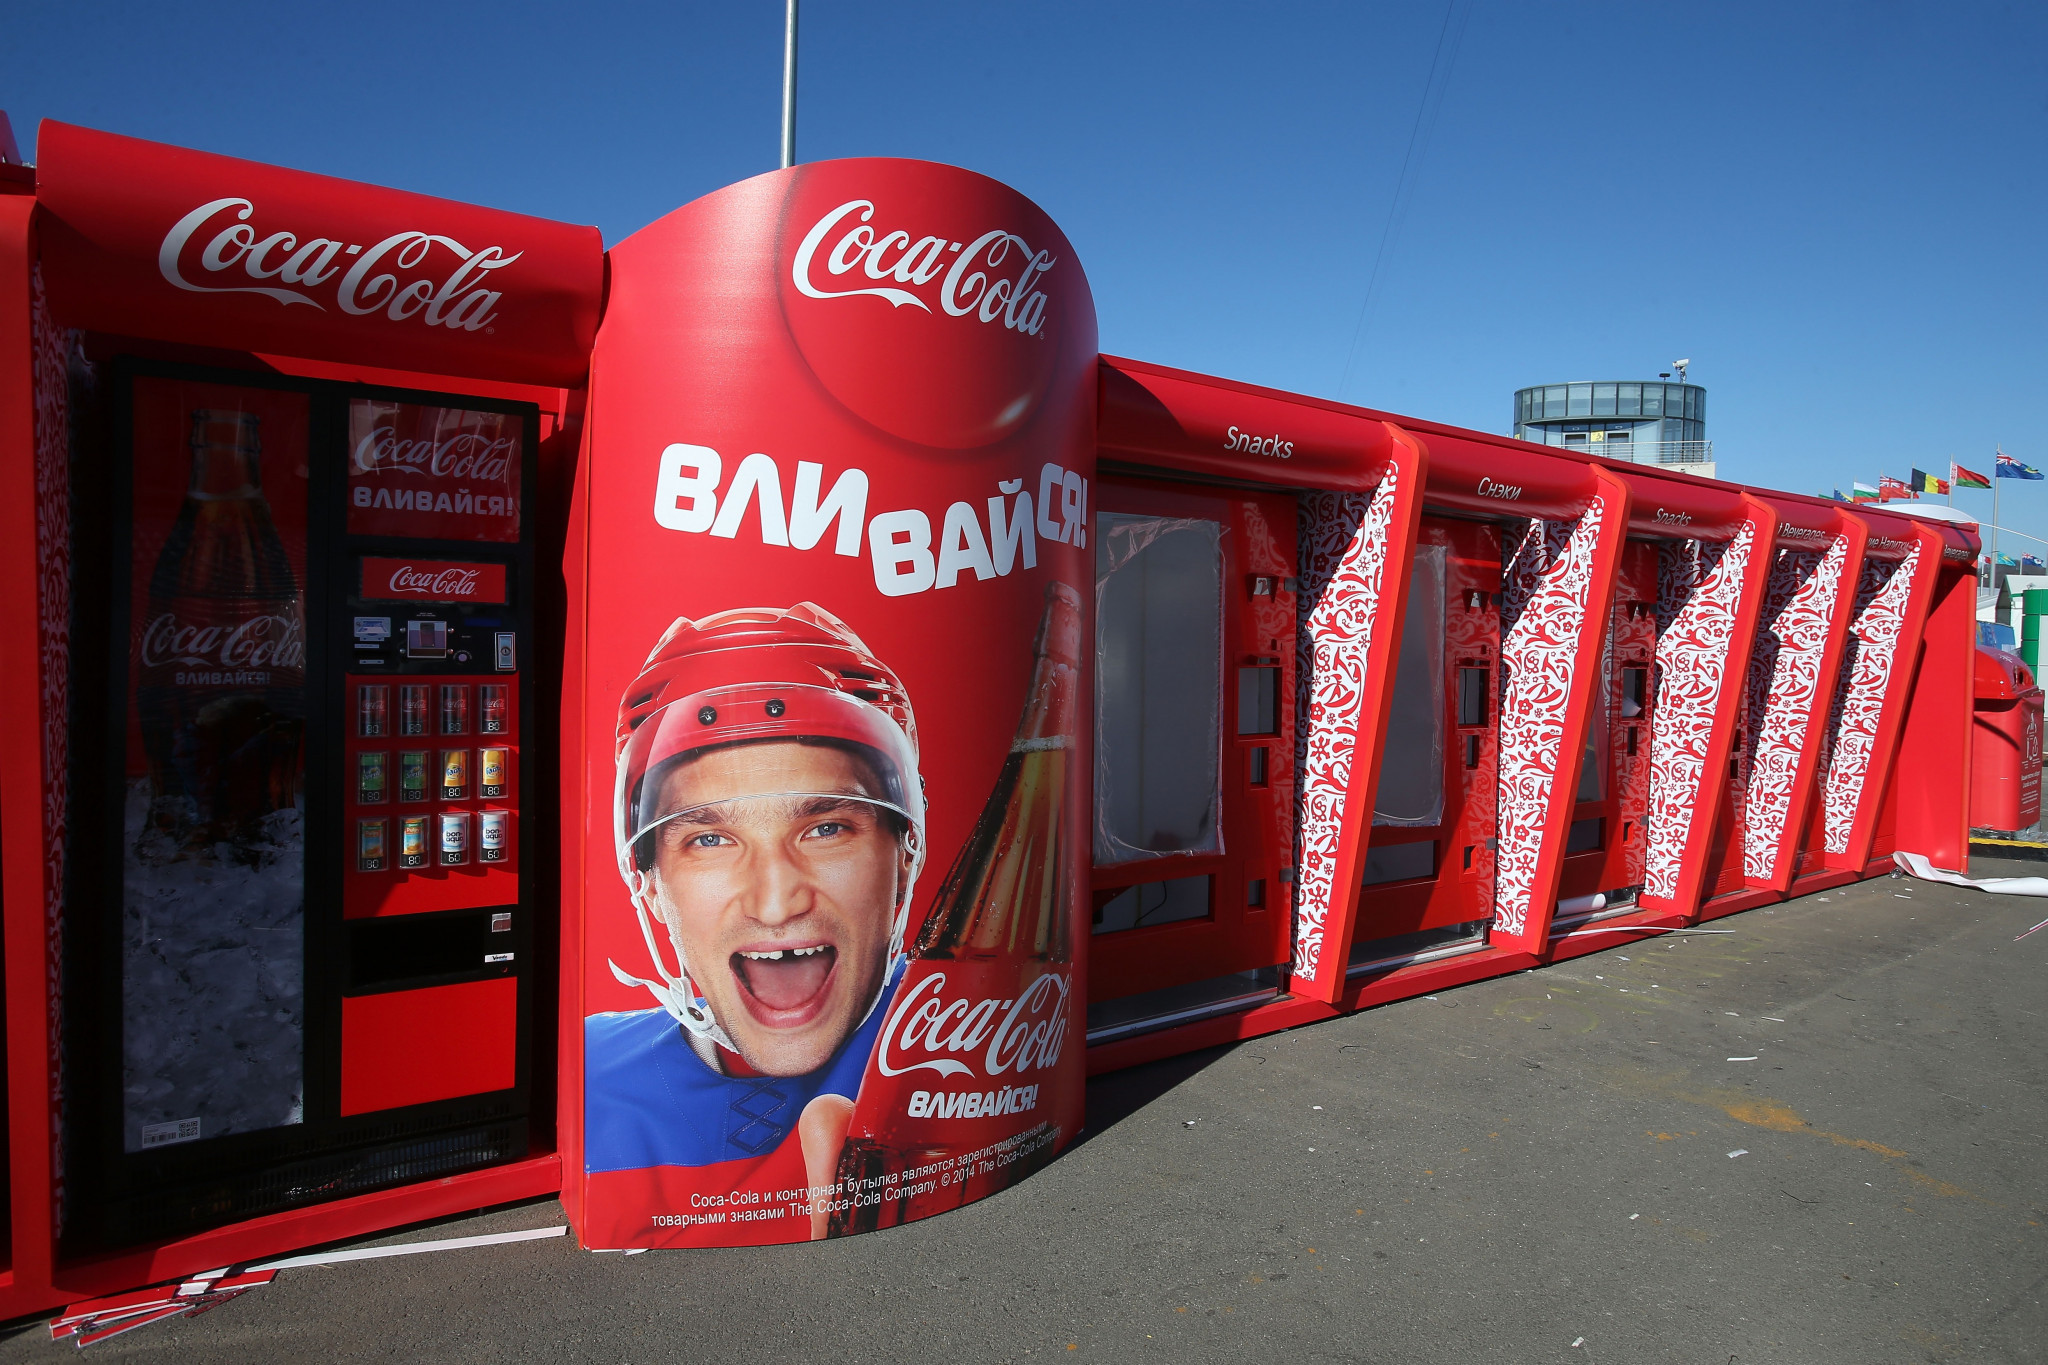 Coca-Cola has been a long-time partner of the Olympic Games ©Getty Images